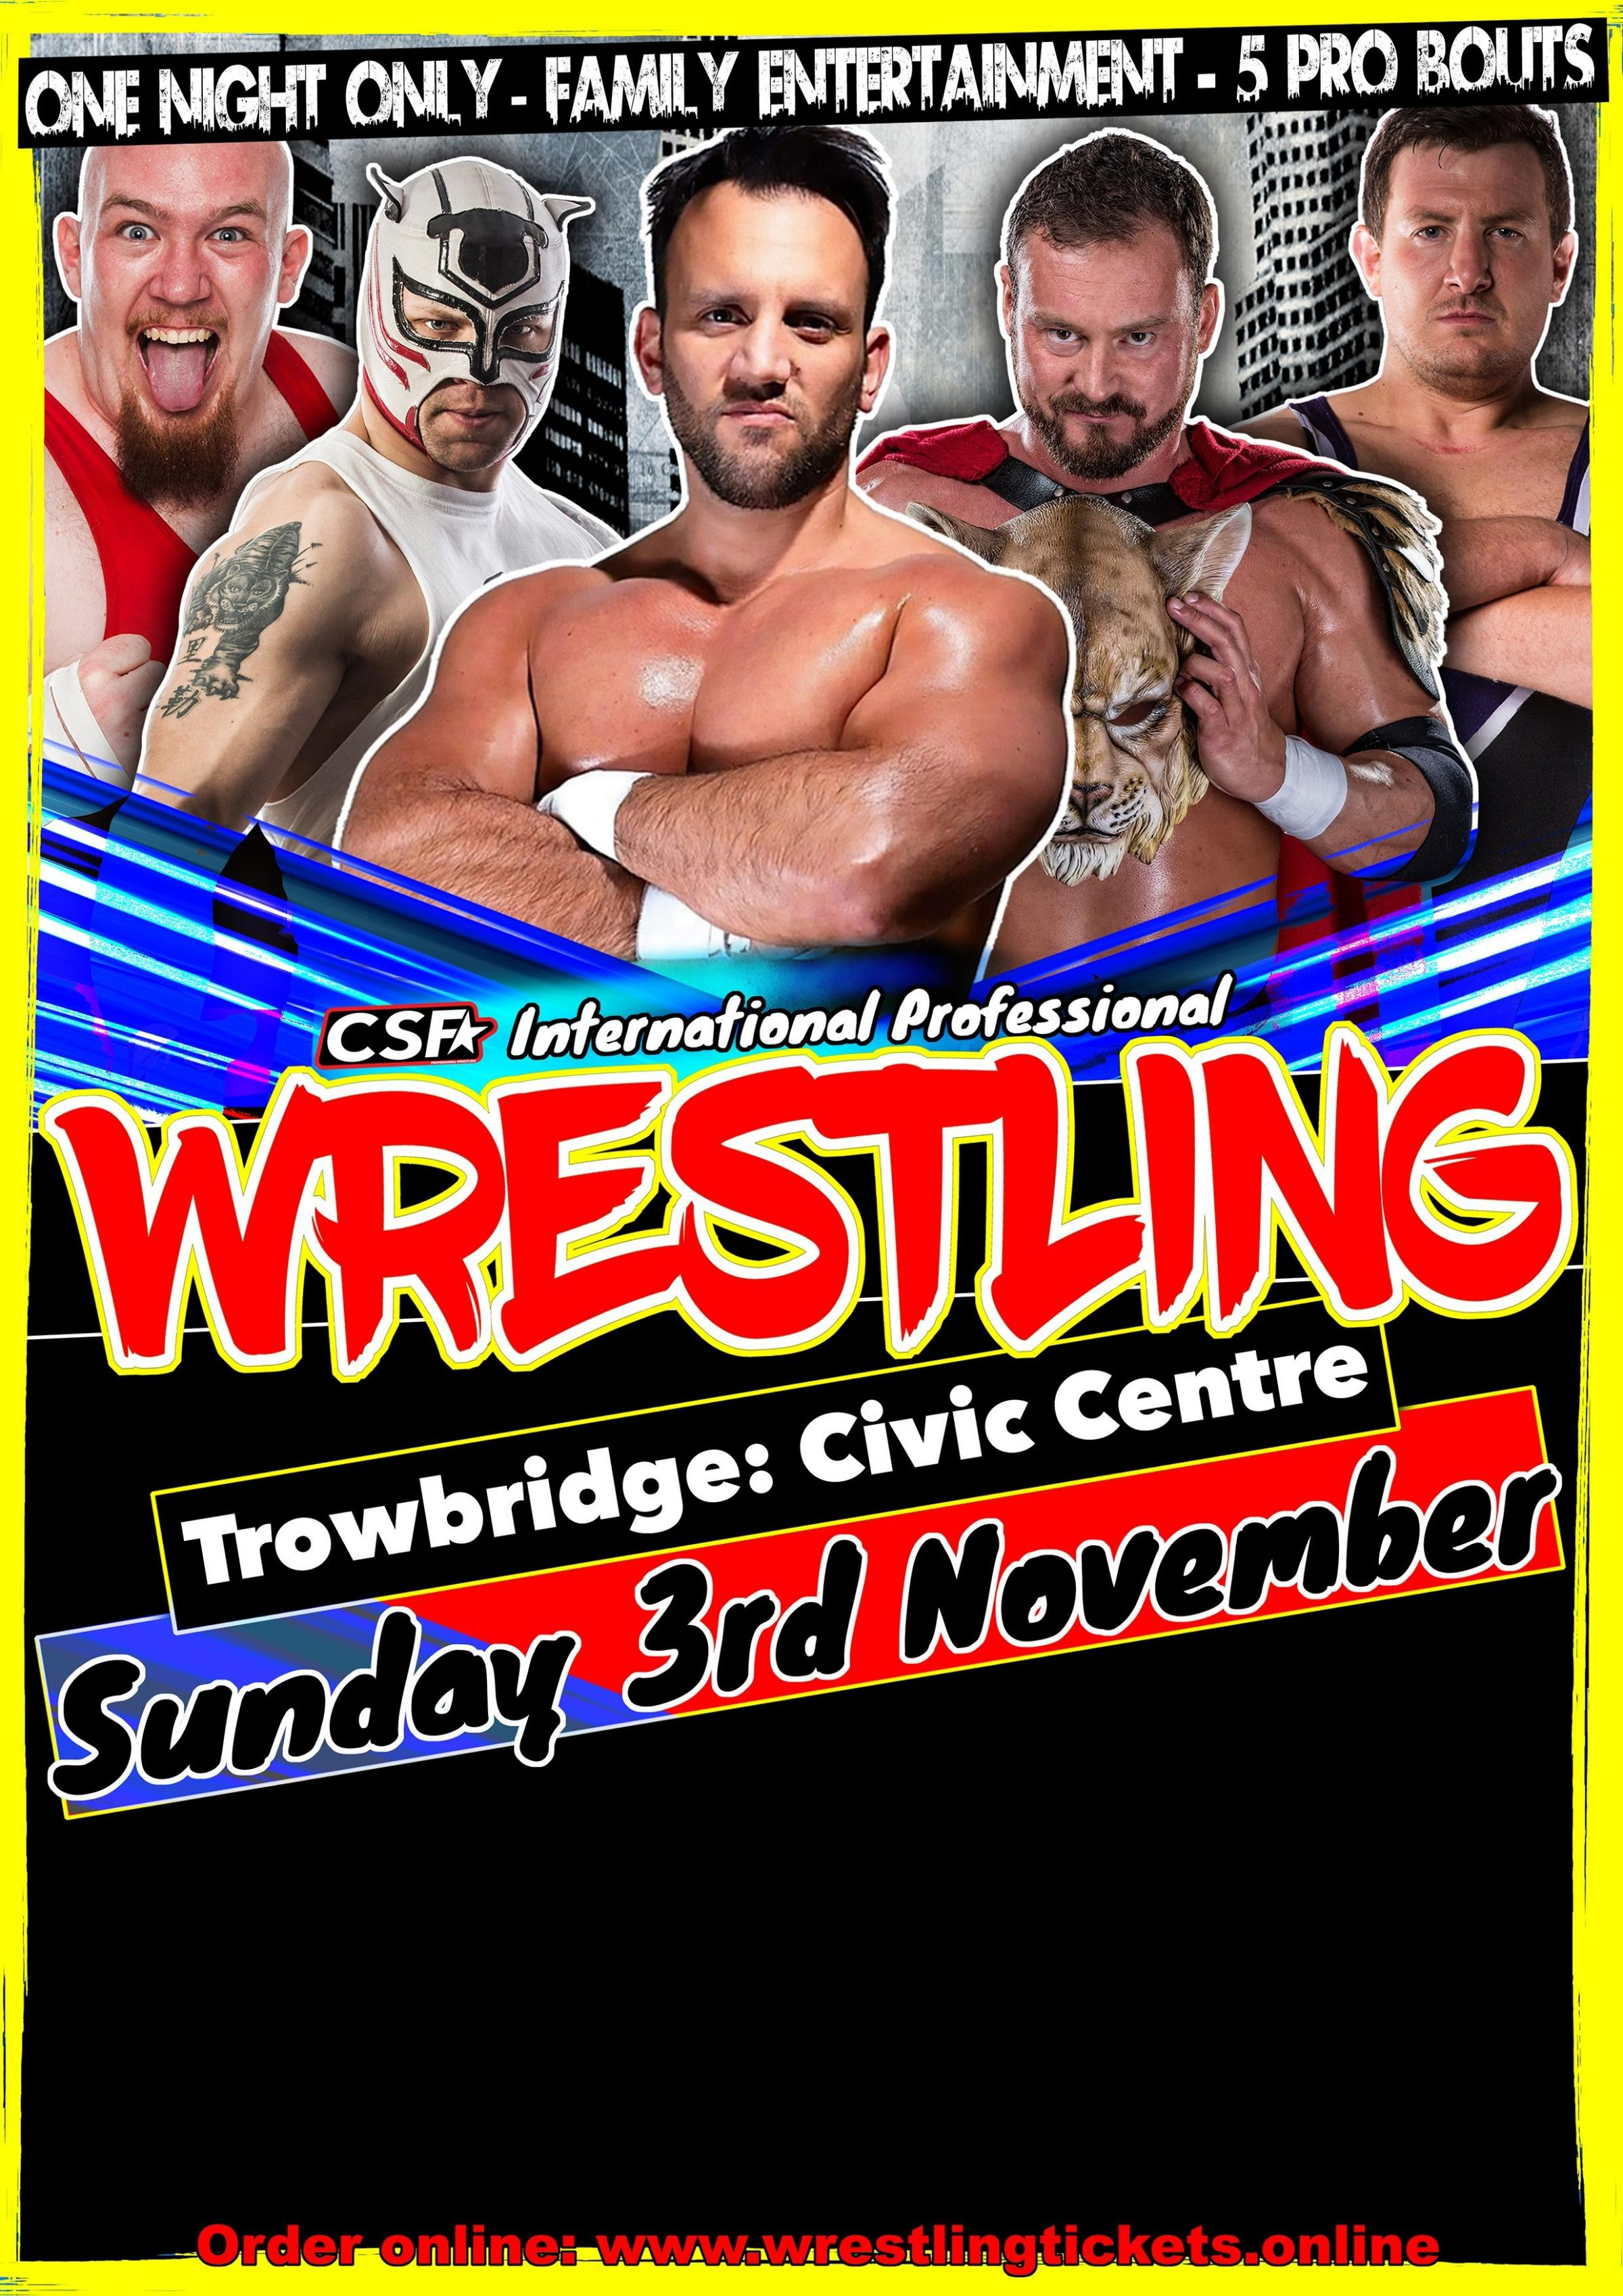 Get tickets for only £9.50 through the Gazette and Herald